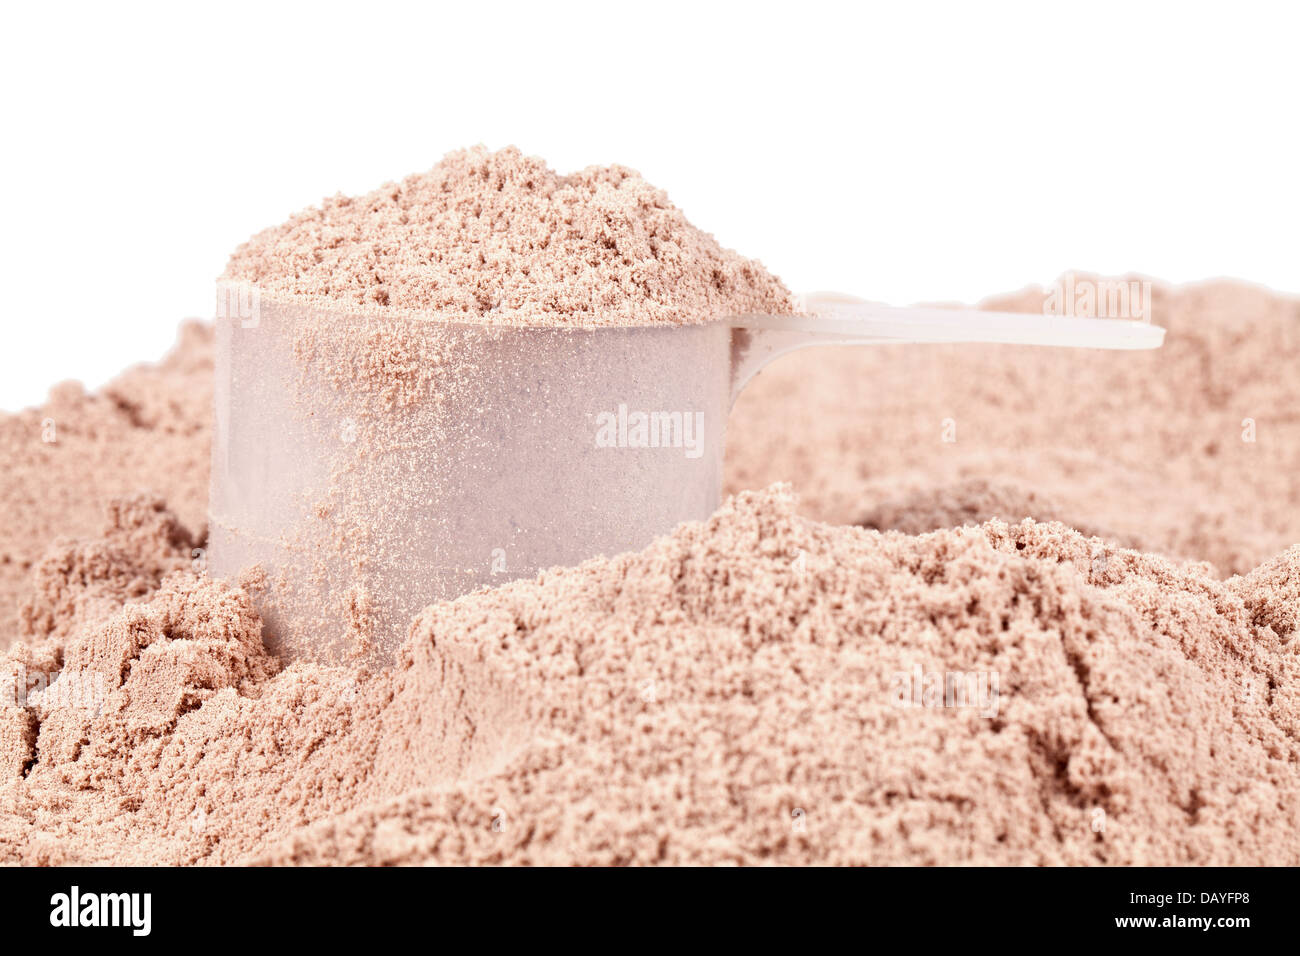 A scoop of chocolate whey isolate protein - Stock Image